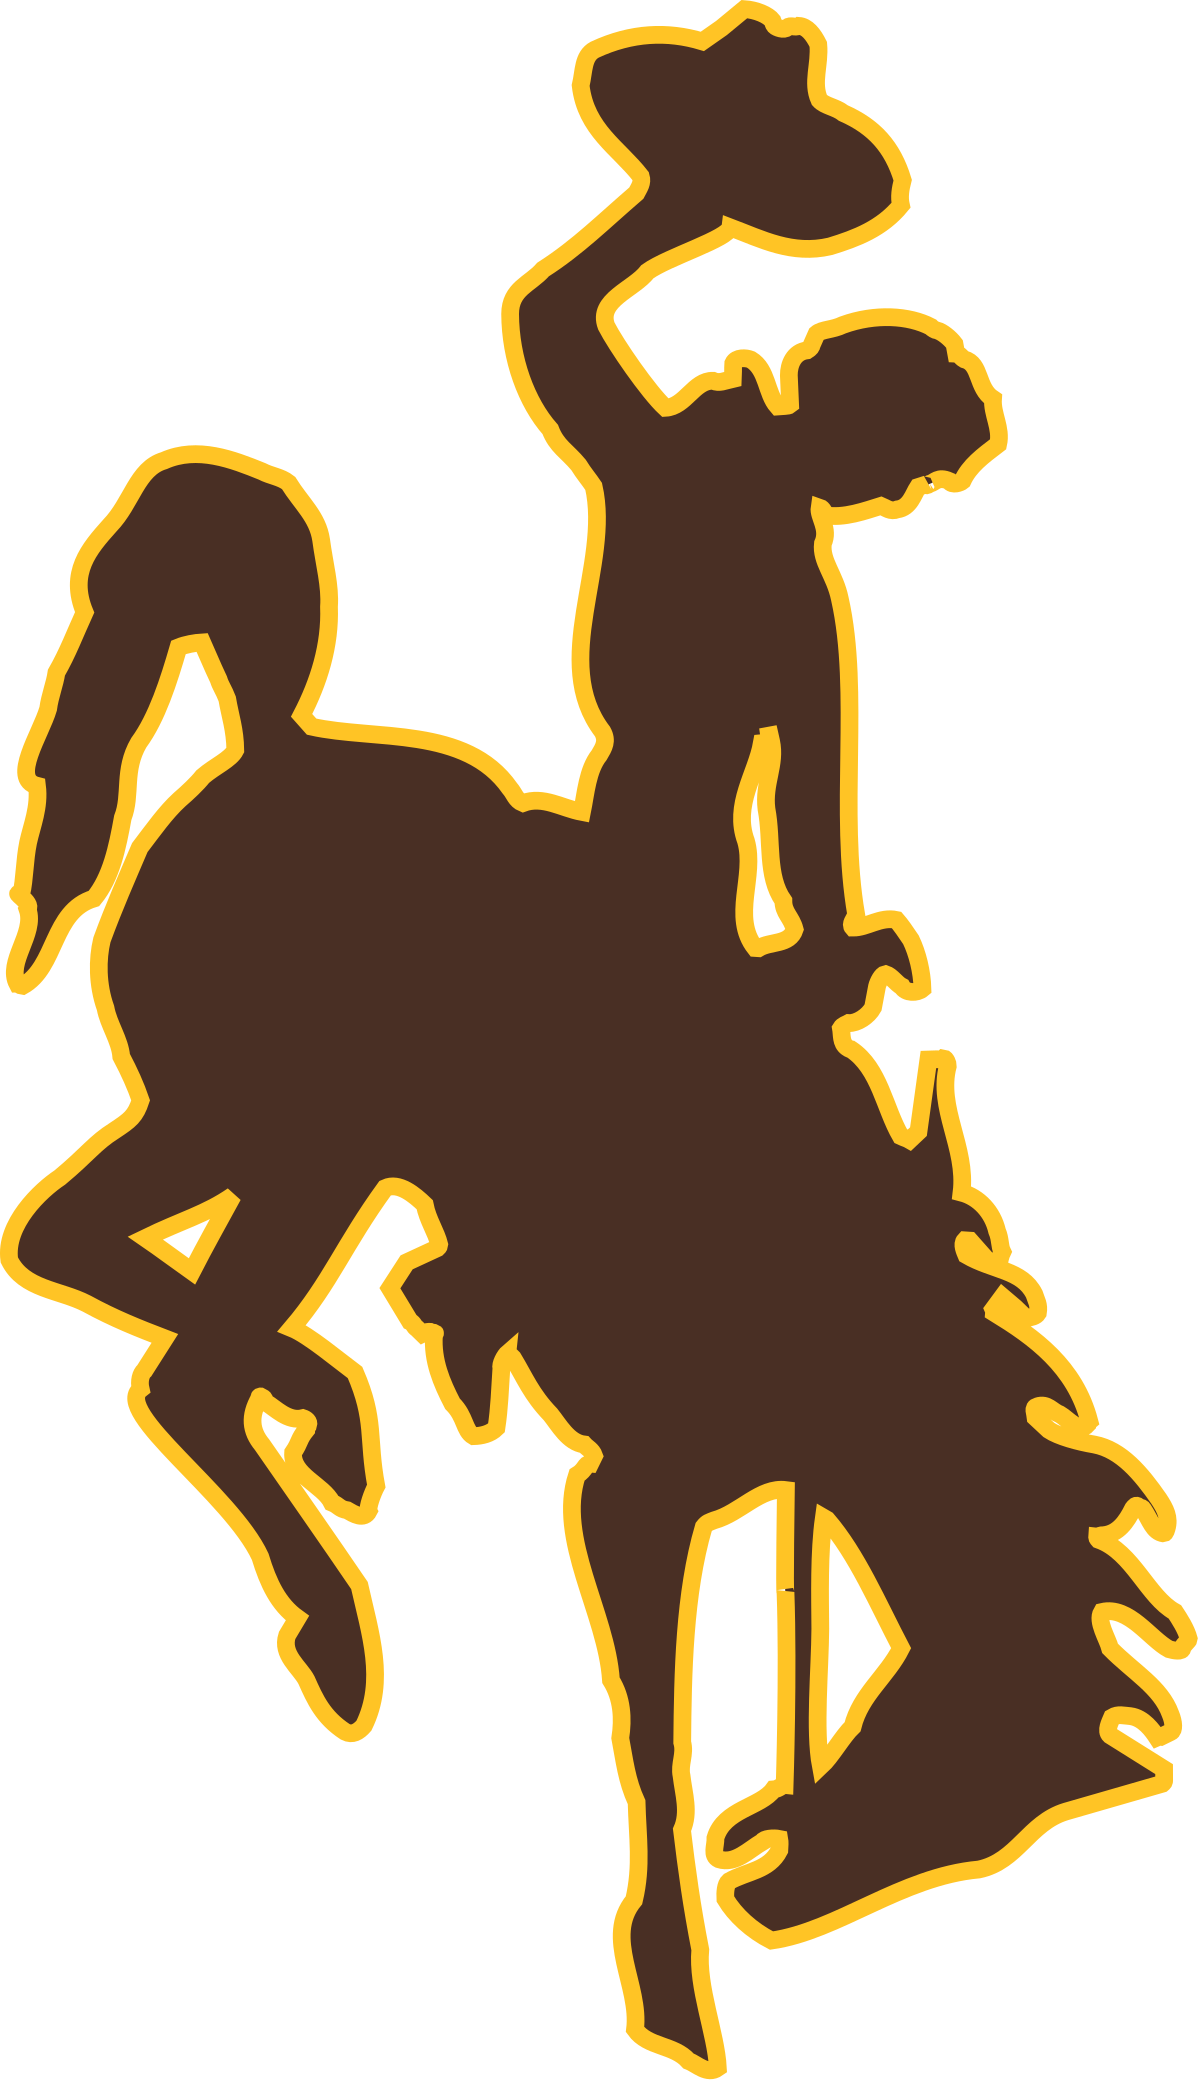 2014 michigan football player silhouette clipart clipart library 2017 Wyoming Cowboys football team - Wikipedia clipart library